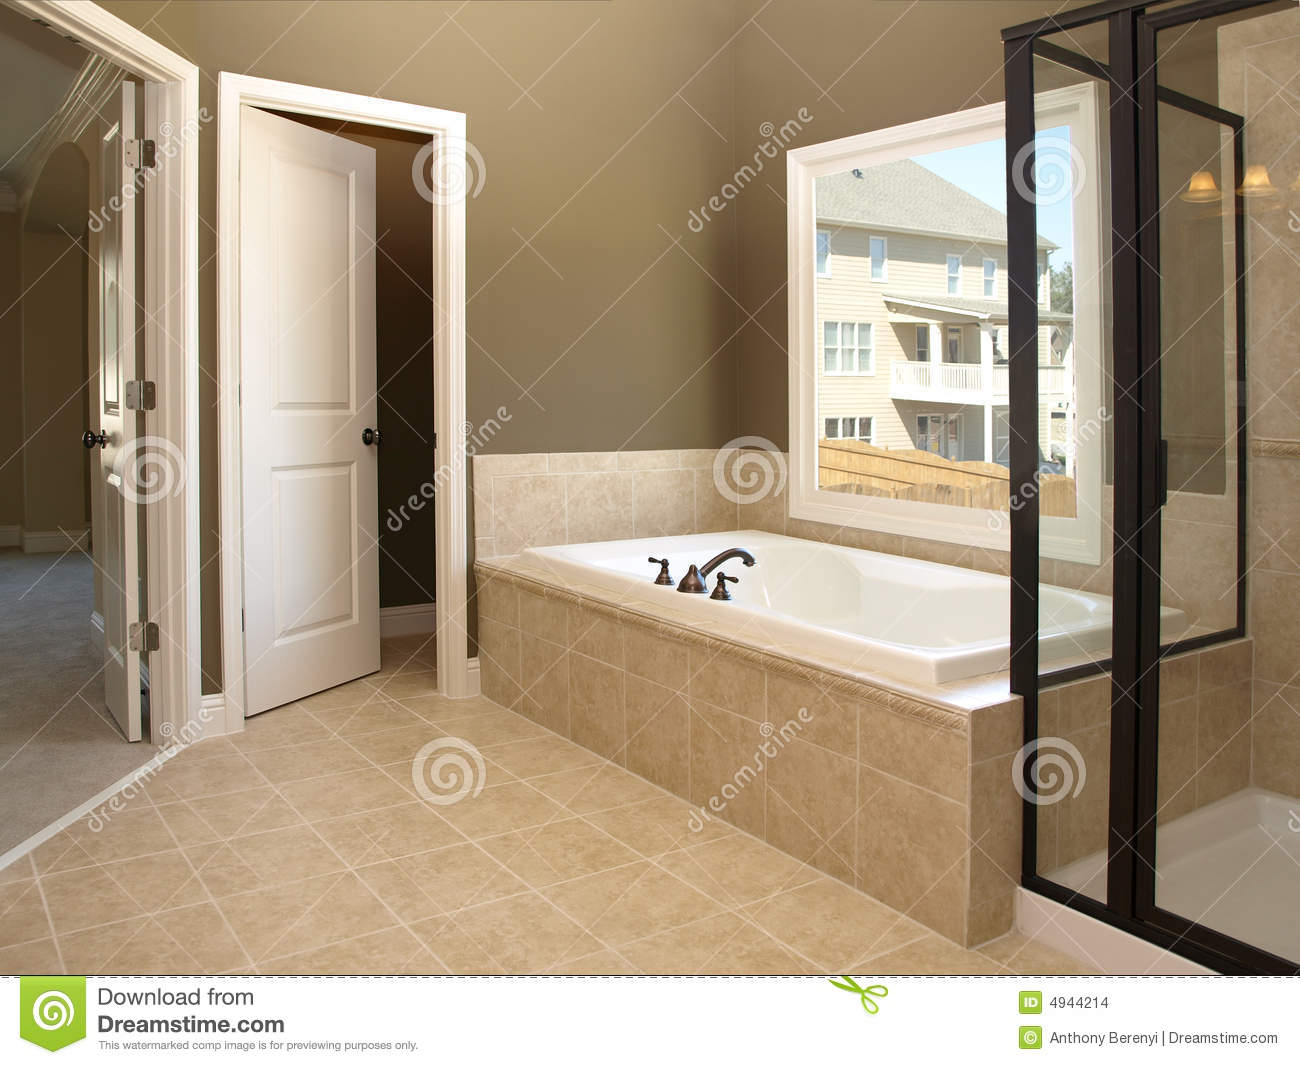 Cuartos De Baño Con Tina:Tub and Bathroom Window